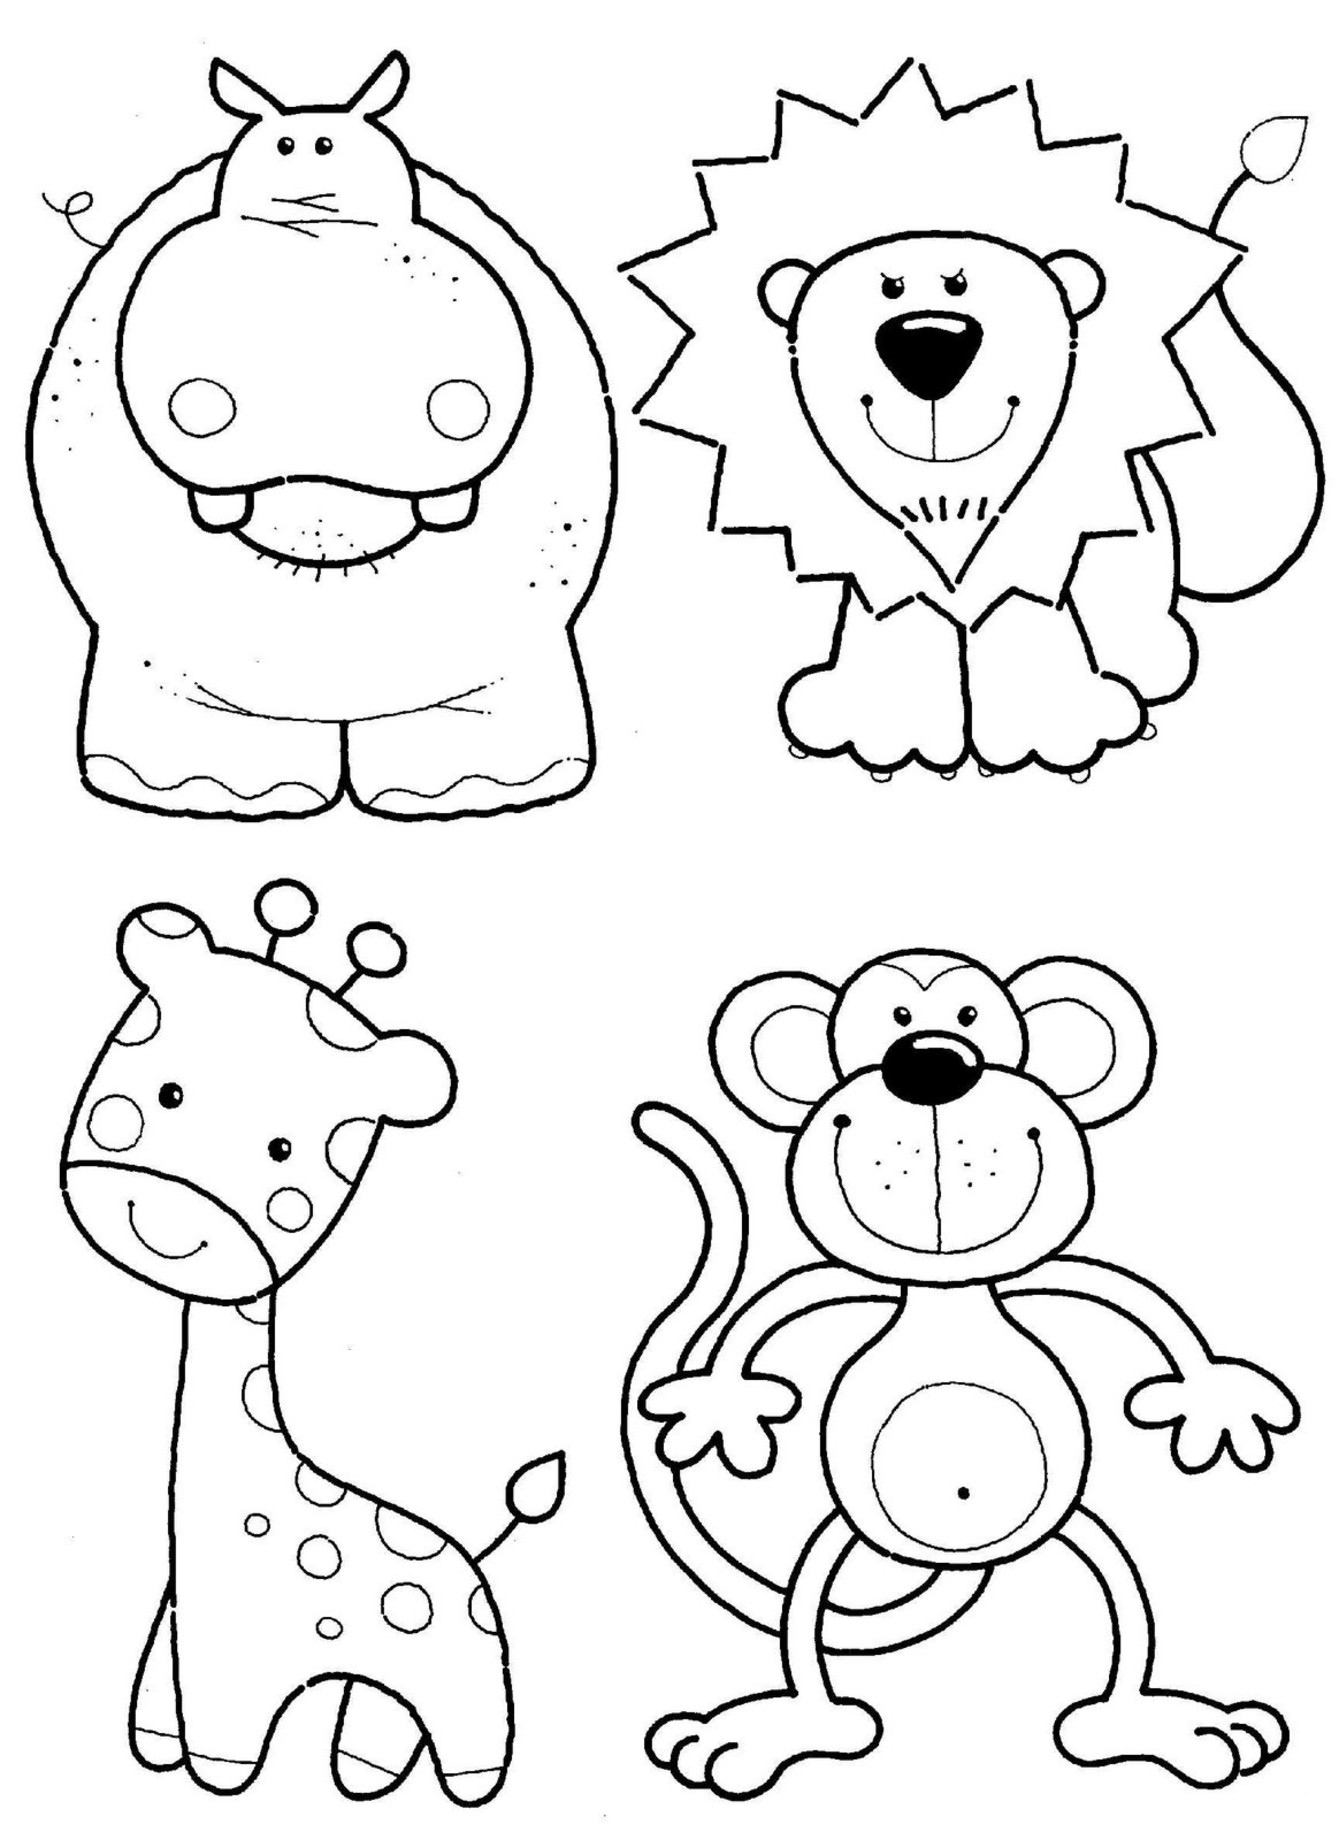 coloring animal pictures to colour zebra coloring pages free printable kids coloring pages pictures to animal colour coloring